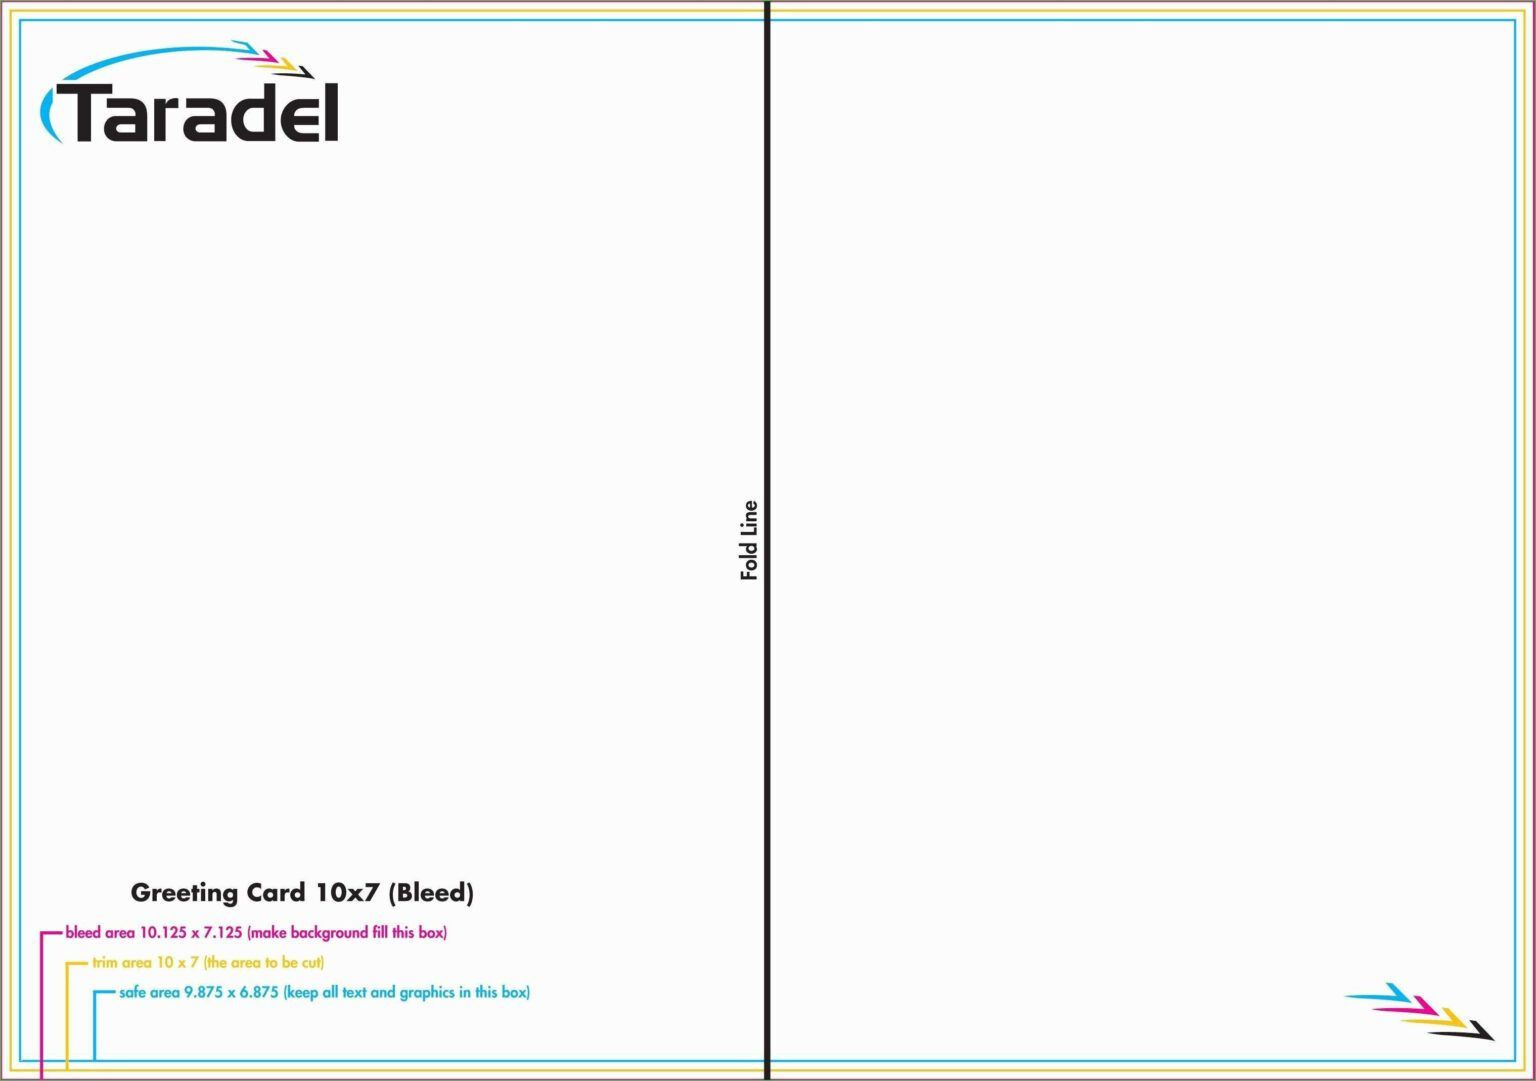 002 Staggering Quarter Fold Card Template Word Blank Image Full